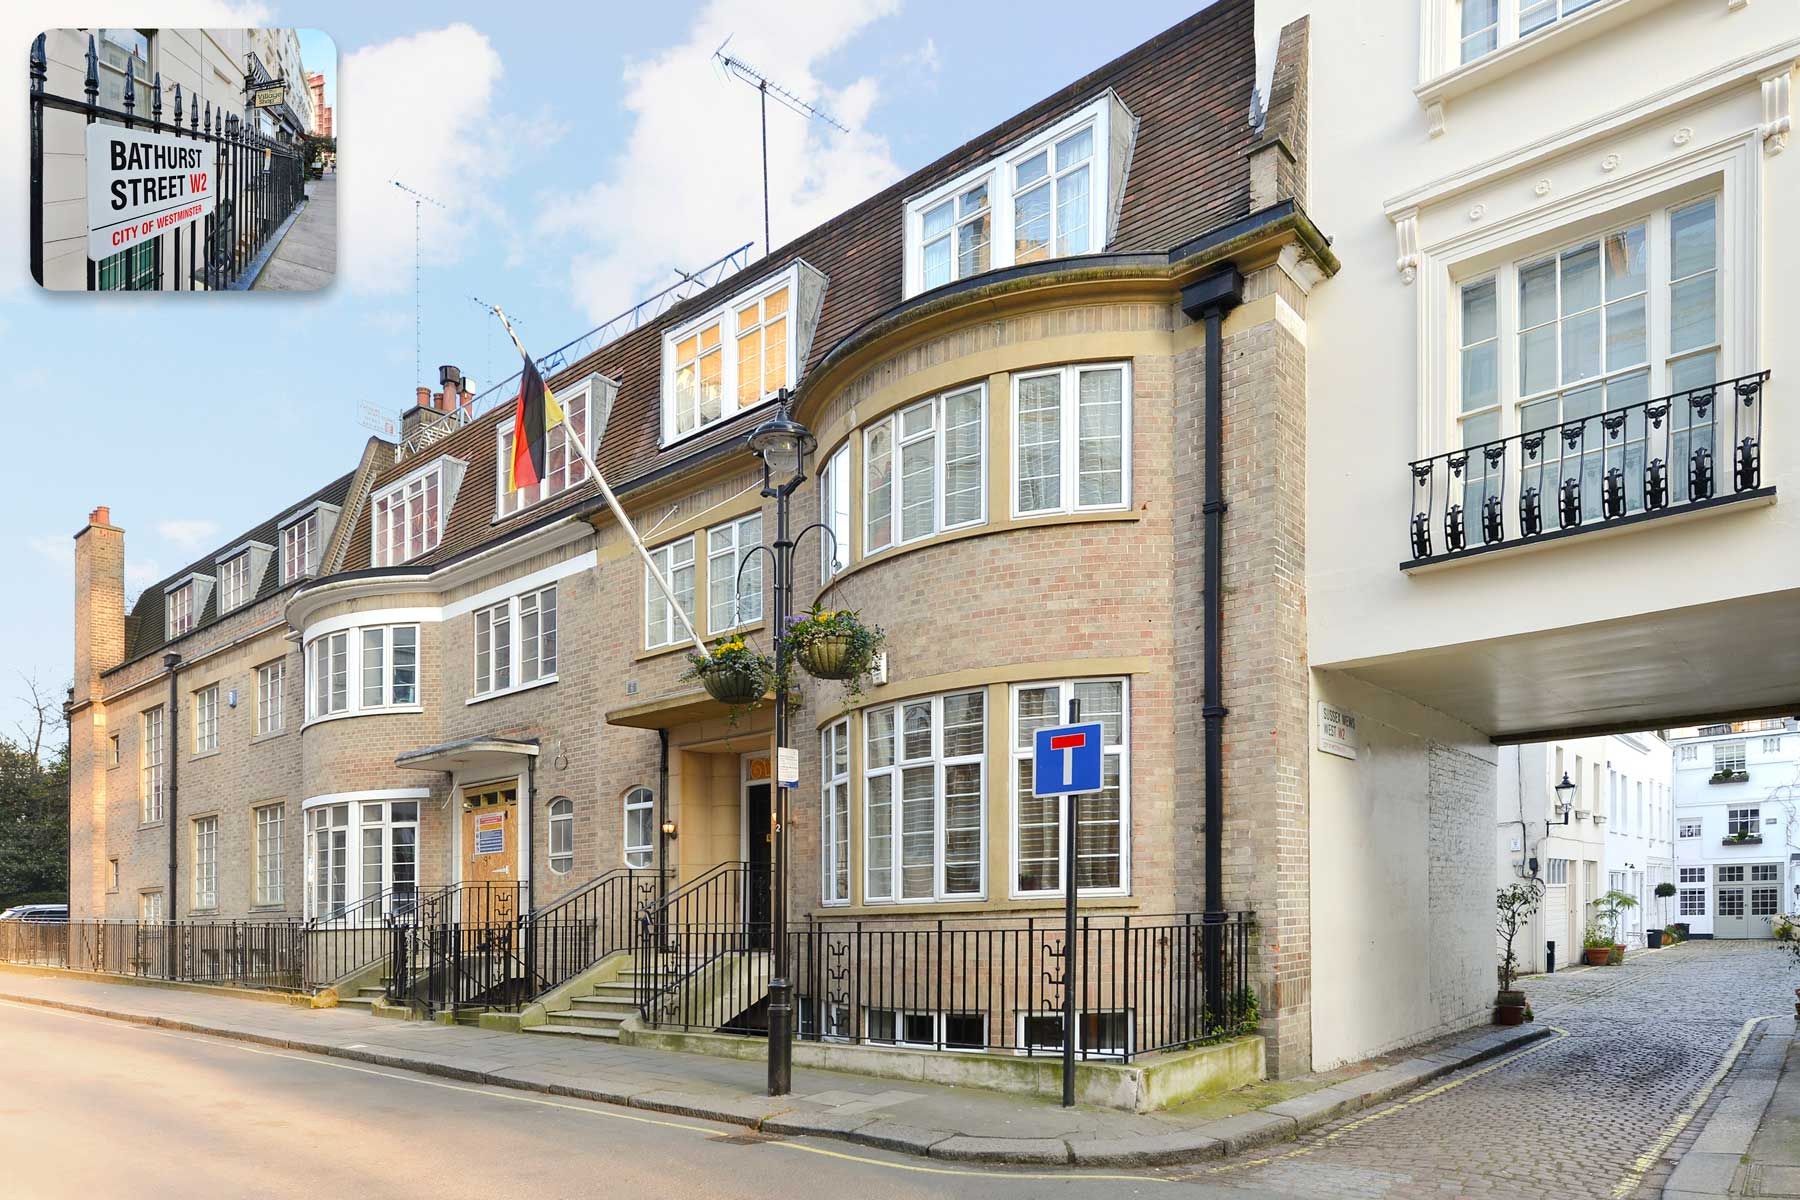 6 bedroom house bathurst street hyde park w2